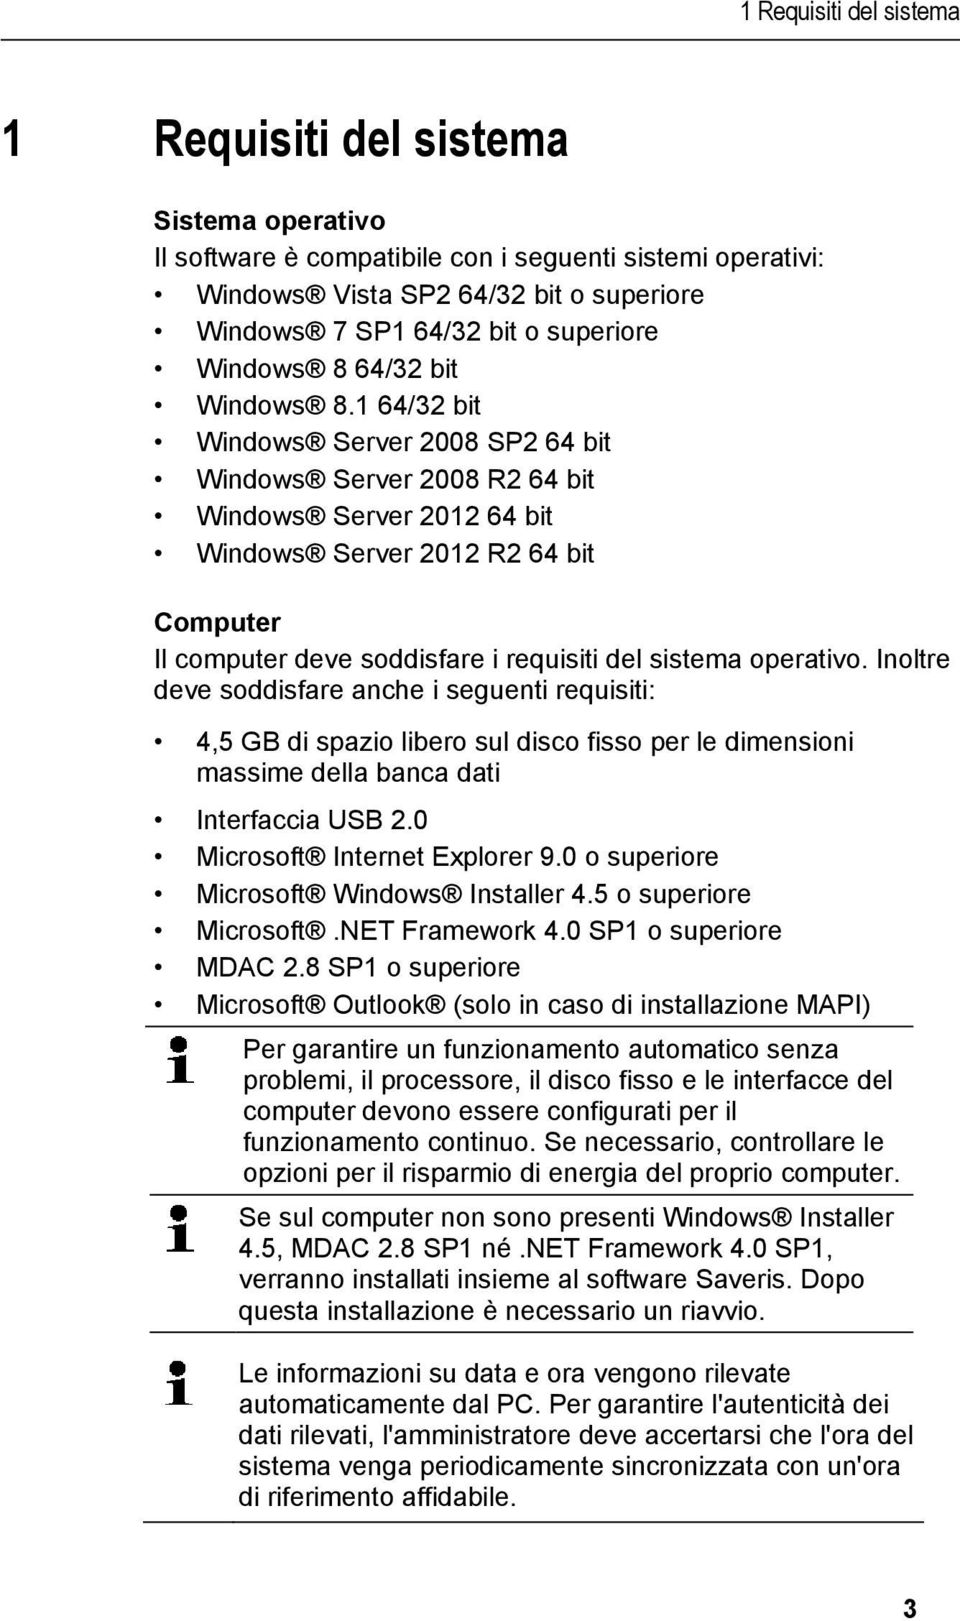 1 64/32 bit Windows Server 2008 SP2 64 bit Windows Server 2008 R2 64 bit Windows Server 2012 64 bit Windows Server 2012 R2 64 bit Computer Il computer deve soddisfare i requisiti del sistema